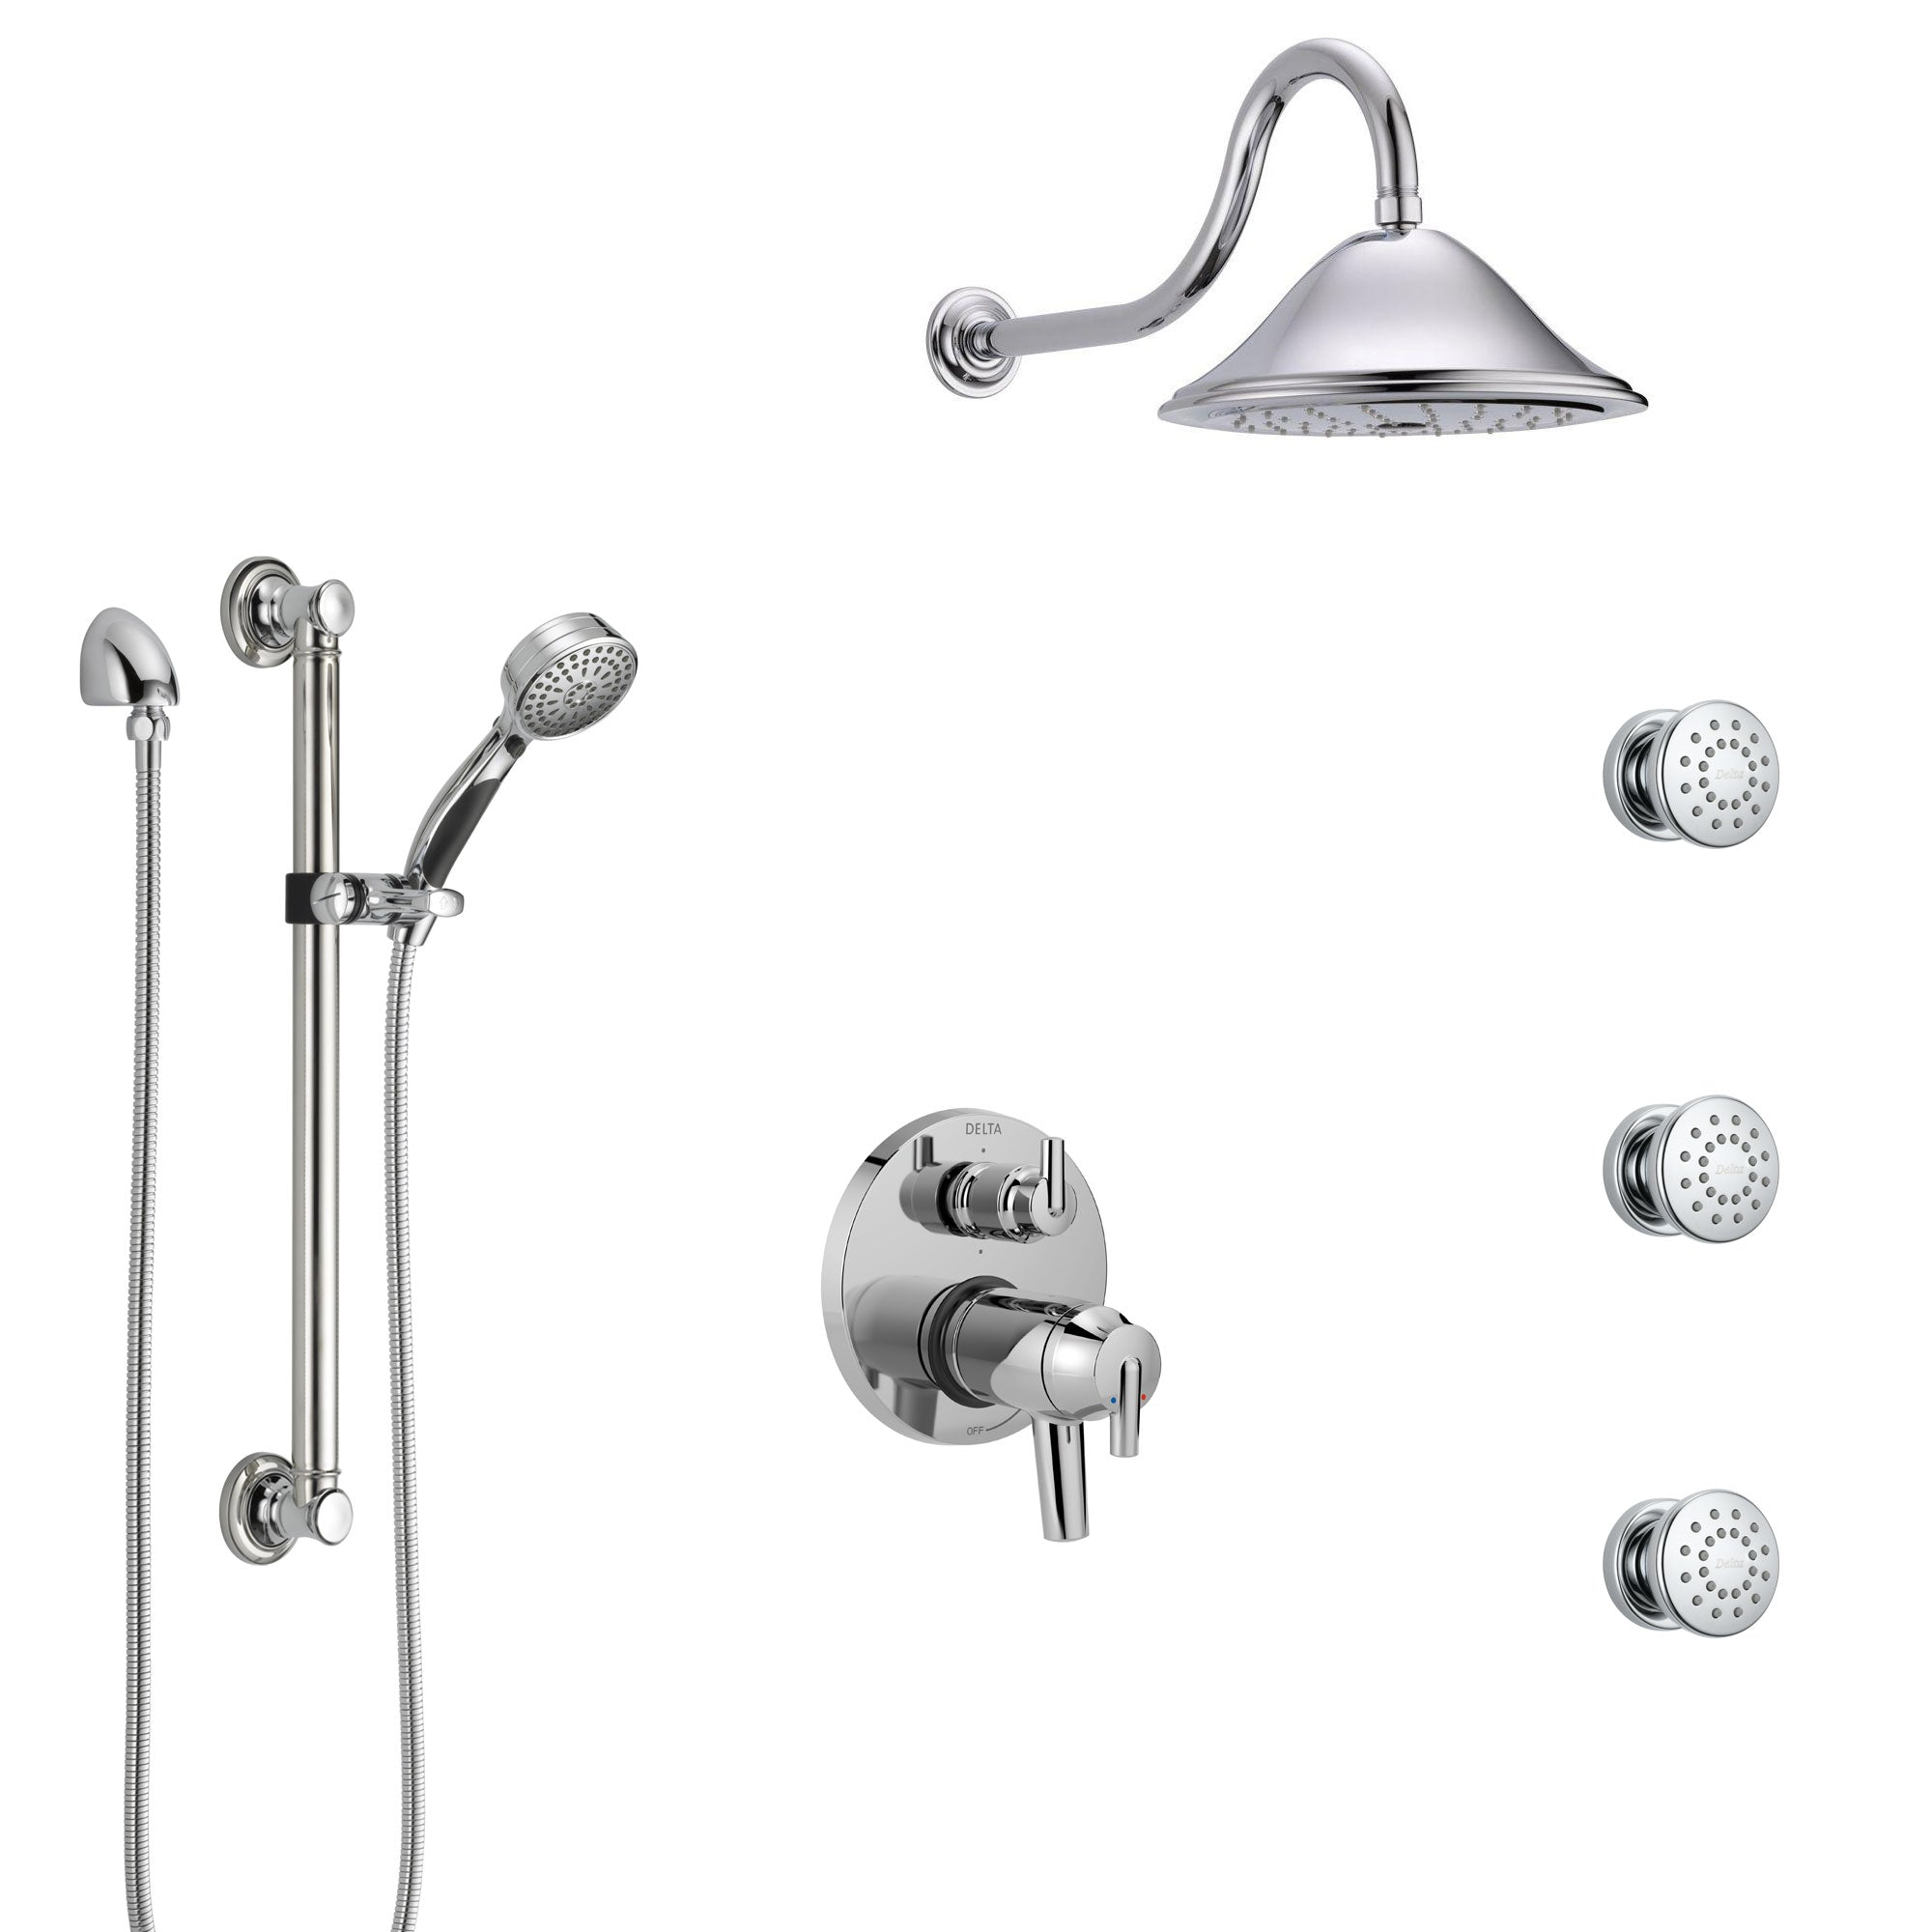 Delta Trinsic Chrome Shower System with Dual Thermostatic Control, Integrated Diverter, Showerhead, 3 Body Sprays, and Grab Bar Hand Shower SS27T9591